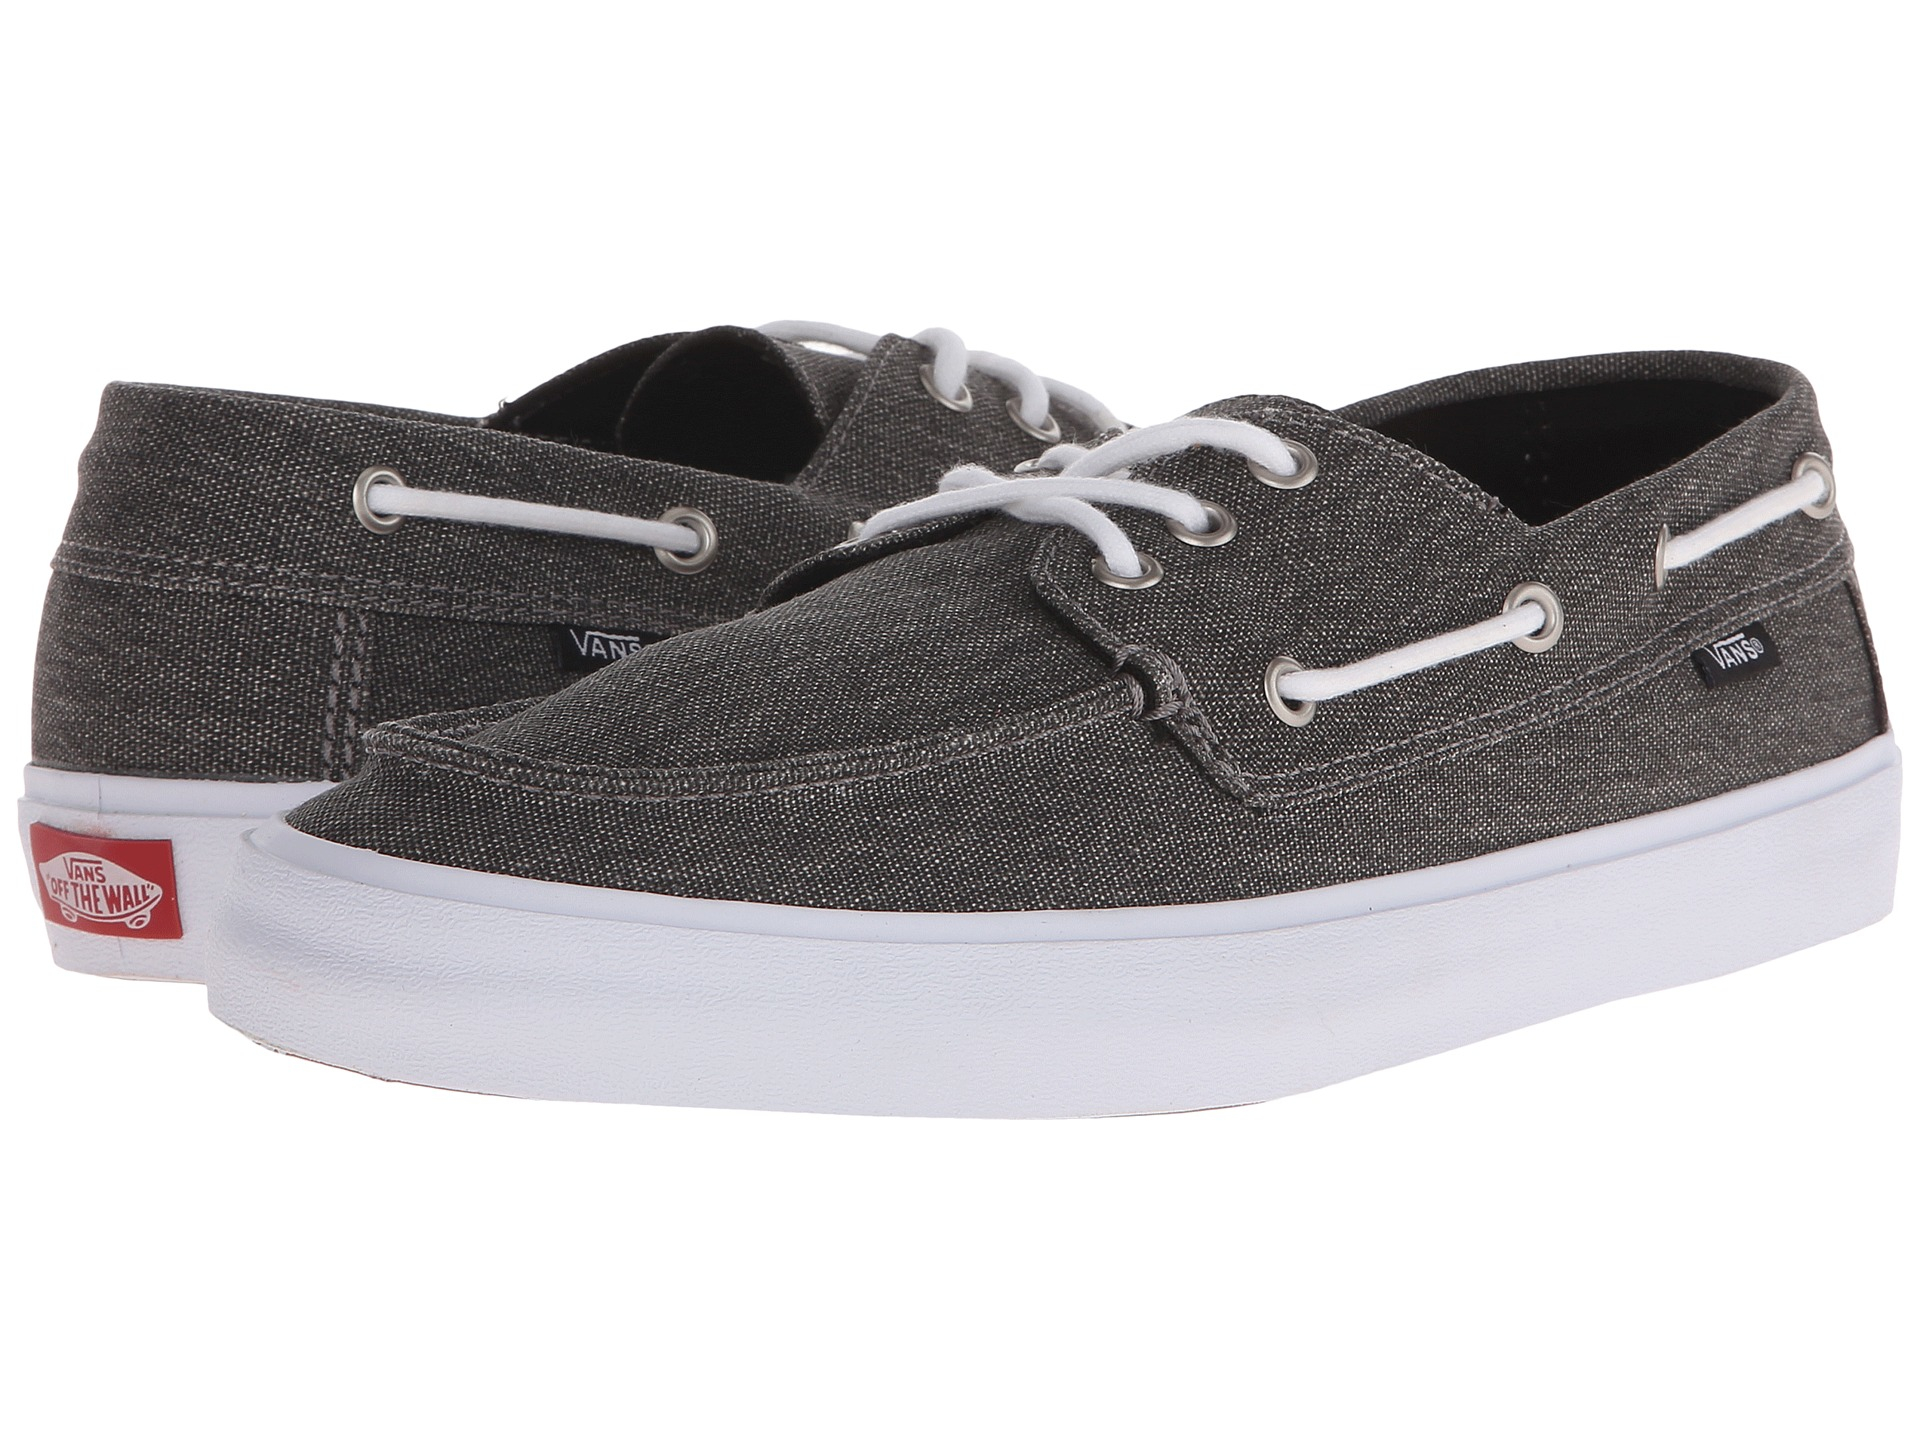 Vans Chauffeur Sf in (Washed) Pewter